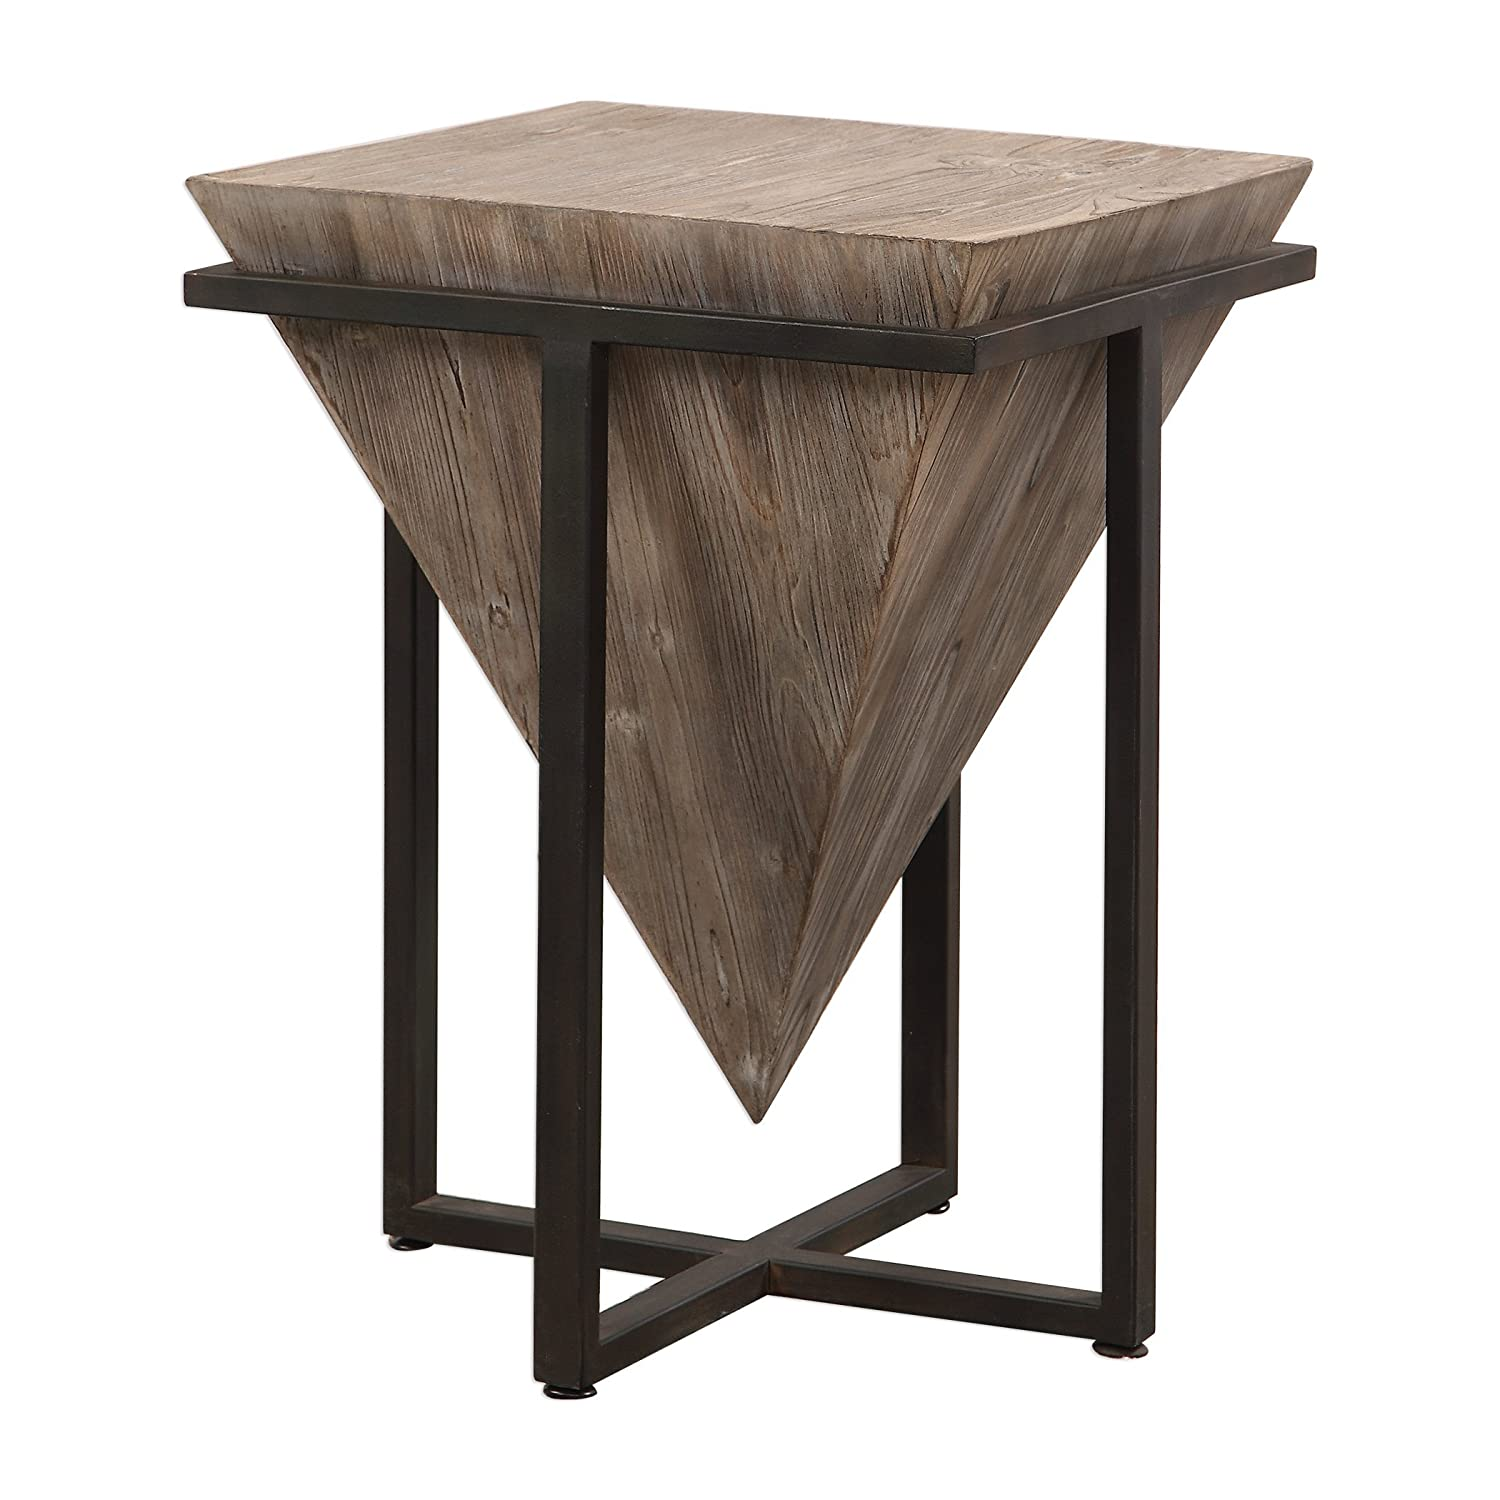 new product b39b4 5846e My Swanky Home Modern Rustic Industrial Pyramid End Table | Geometric Iron  Wood Block Accent